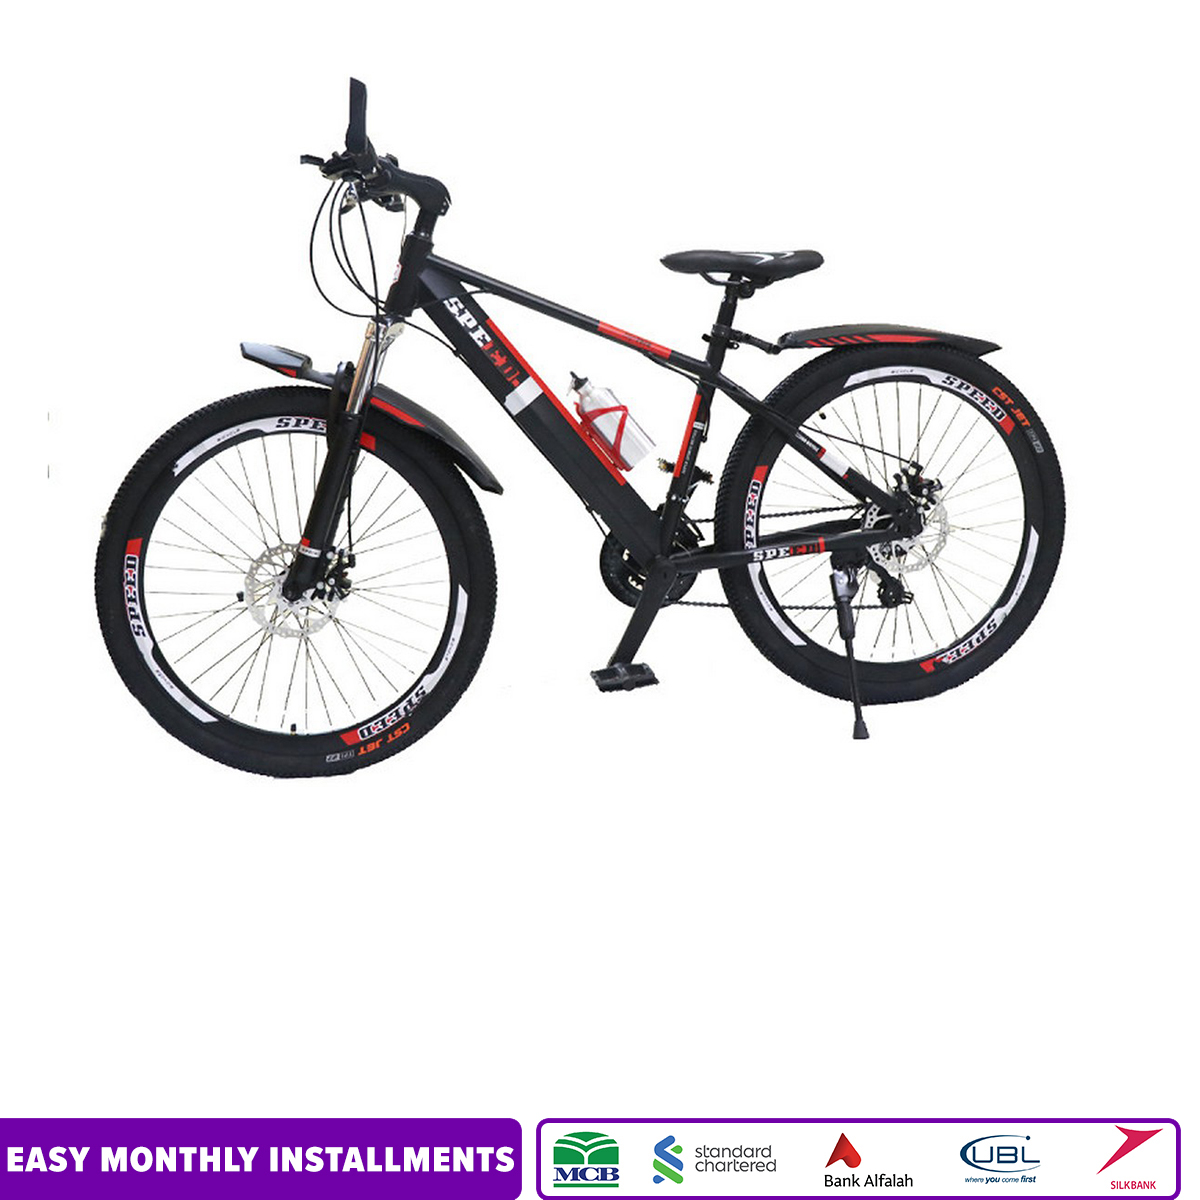 Speed Bicycle 26 inches Alloy RIM Disk Brake System Adjustable Seat Racer & Road Bike - Multicolor